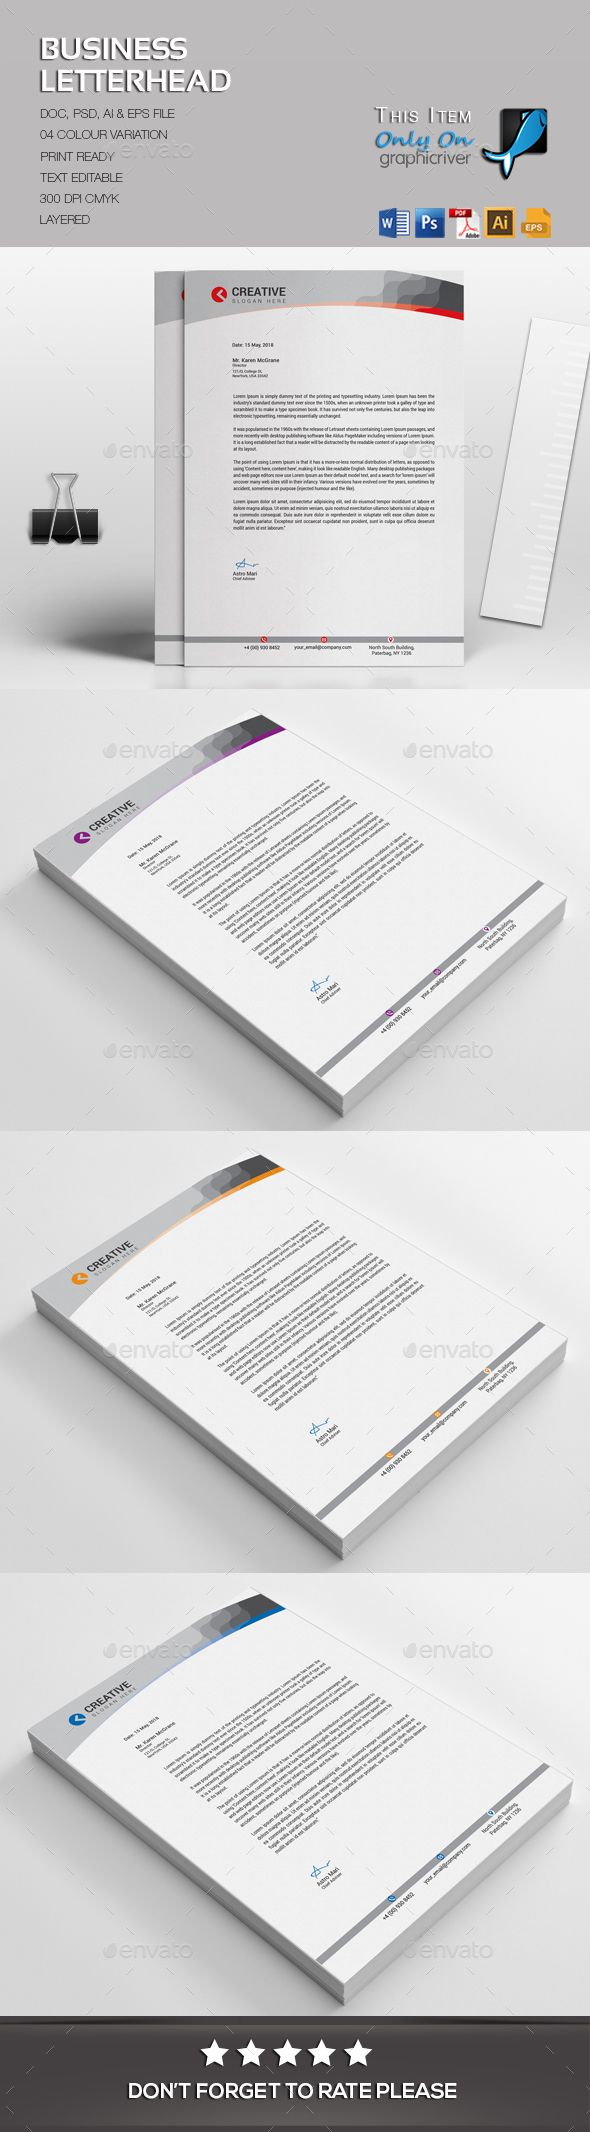 Business letterhead letterhead template ai illustrator and template business letterhead template psd vector eps ai illustrator ms word spiritdancerdesigns Choice Image